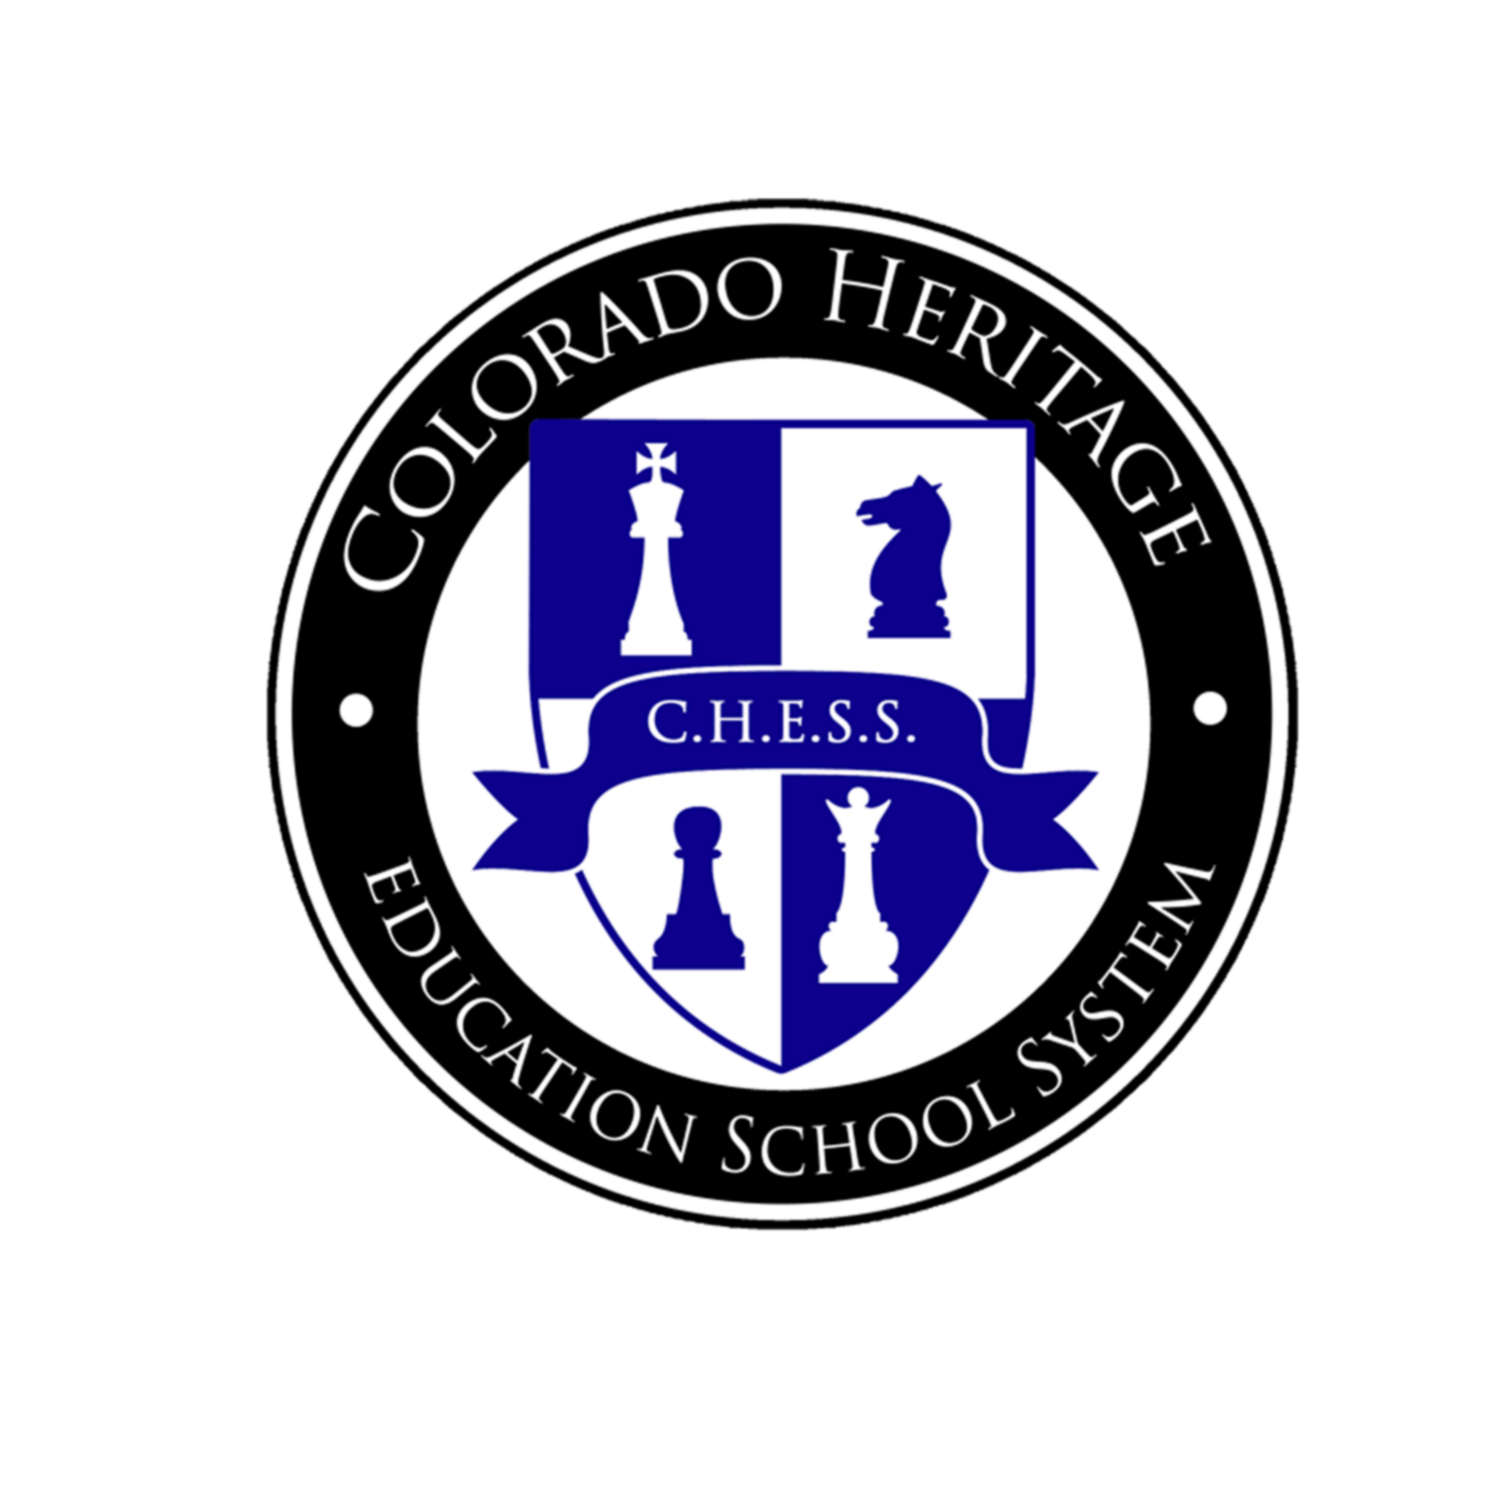 Colorado Heritage Education School System